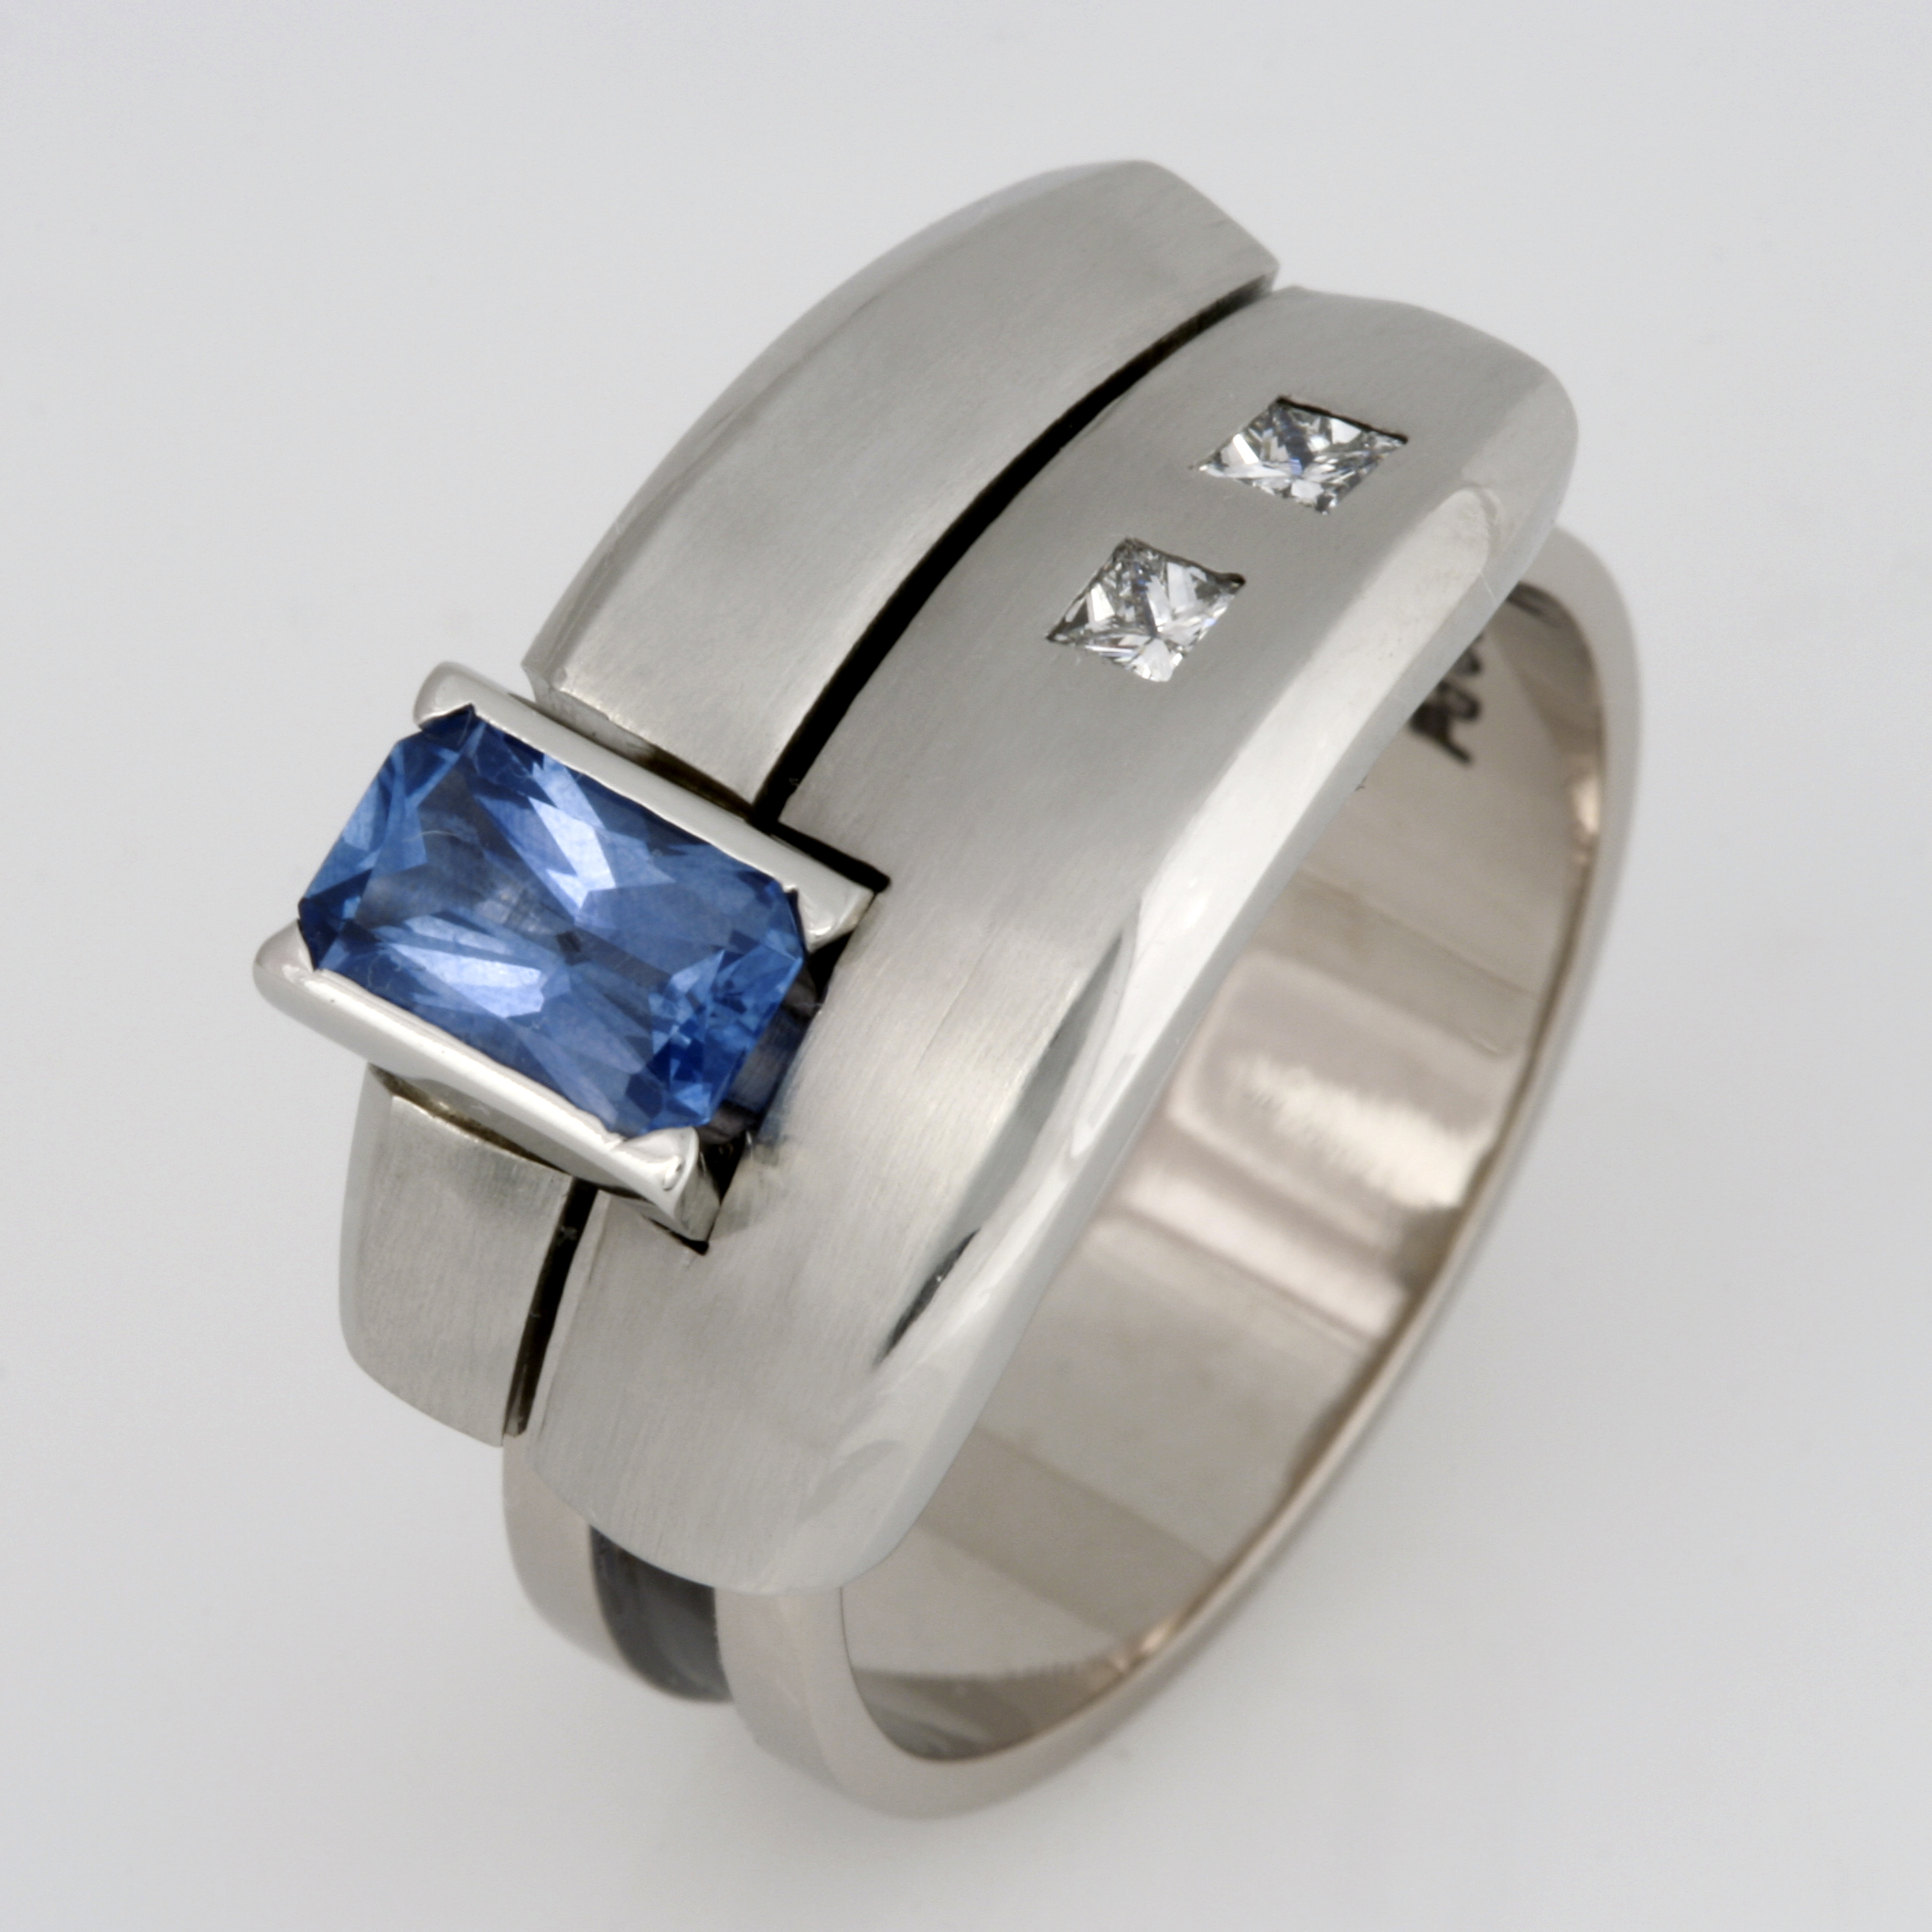 Handmade ladies palladium Ceylon sapphire and diamond 'Archie' style ring